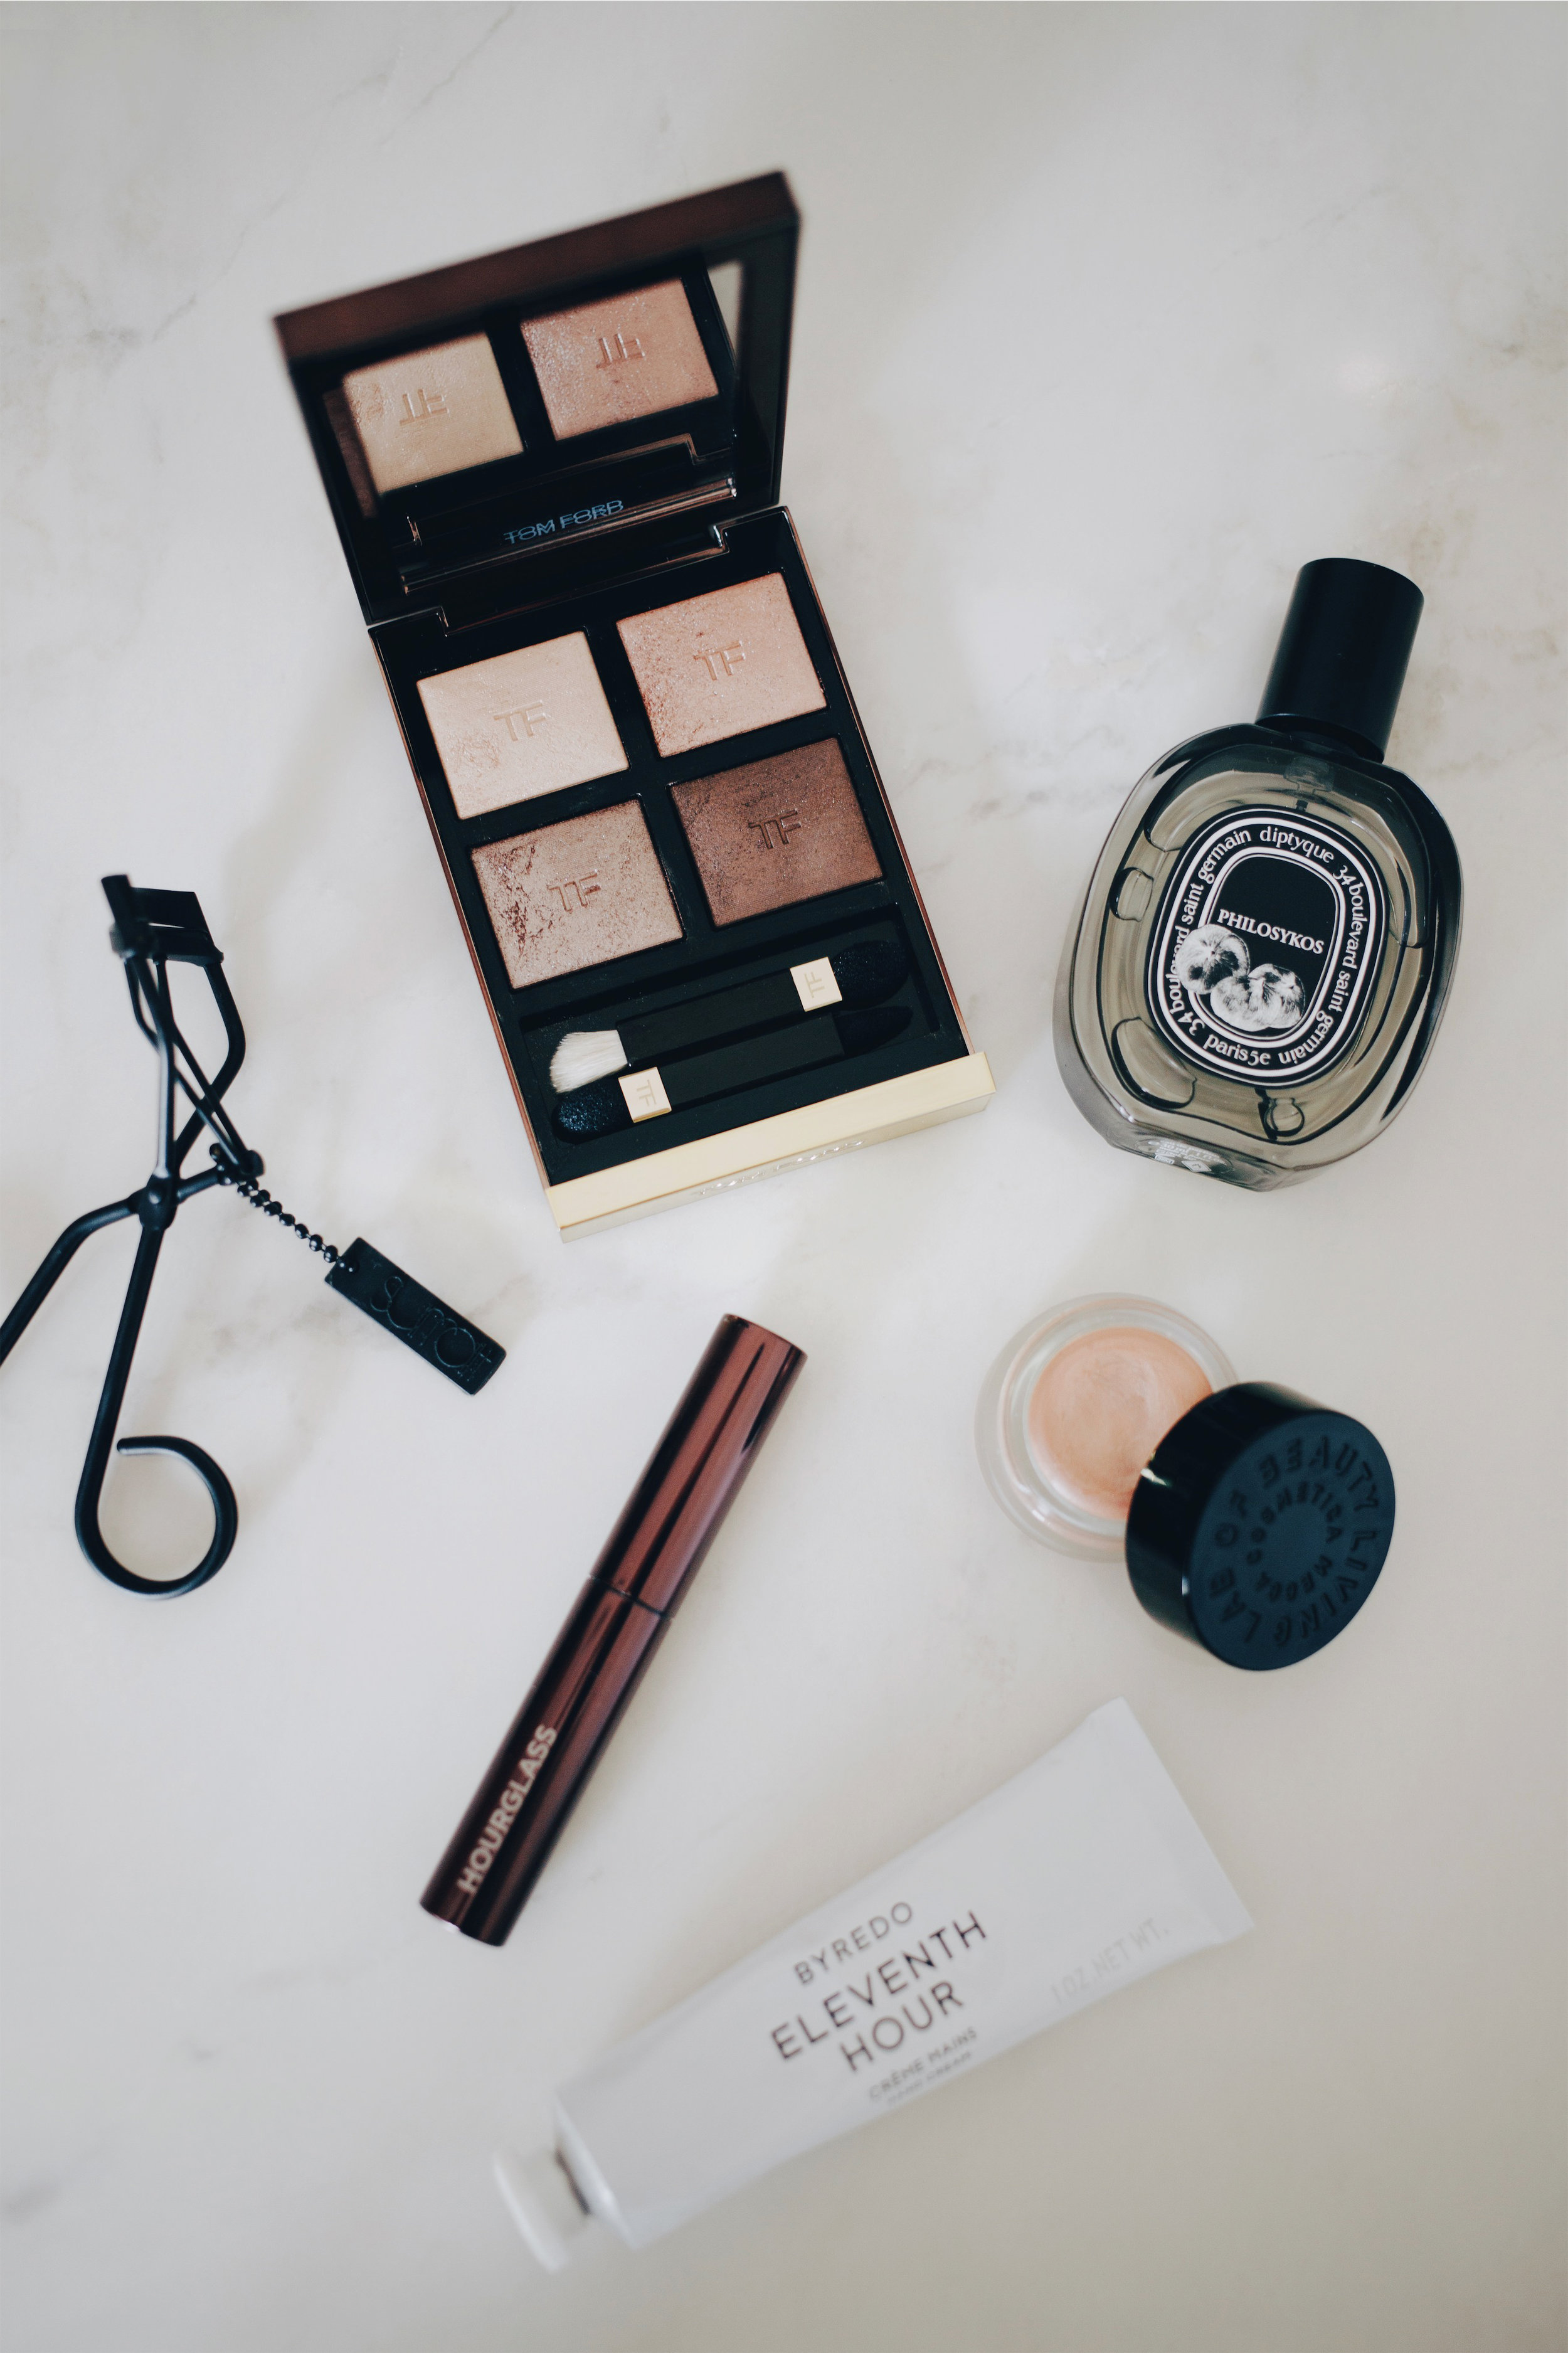 - When my old work friends ended up buying me something for my birthday that I already owned, I was left with some David Jones store credit, which I used to buy the Tom Ford Eye Colour Quad in Nude Dip. It was something I had been umm-ing and ahh-ing over buying for about three years and I figured if I was obsessing over it this much, it was worth just adding to my wishlist, and I'm definitely glad I did! The quad contains four buttery shimmer shades that when applied to the eyelids, have a slight wet-look finish that I absolutely adore. If I'm in a rush and want a quick wash of colour over the lids, I'll use the eyeshadows individually, but if I'm going for a full on eye look, I'll pair the quad with matte eyeshadows from other palettes to use in my crease, outer corner and lower lash line. I feel like some people might be put off by the fact that there are no matte shades in this quad, but because I love each individual shade in here so much, it's not an issue for me in the slightest. I've never been disappointed by Tom Ford and I really do feel like you get your money's worth with his products.When my Glossier Boy Brow ran out, I decided to see what all the fuss was about over the Hourglass Arch Brow Volumising Fibre Gel. In the shade Dark Brown, it has a dual-sided brush, which features both short and long bristles and applies the product in varying intensities. I'm more partial to the short bristles as that's what I'm used to with traditional brow gel brushes, but the long bristles are great if you like that feathery sort of look.